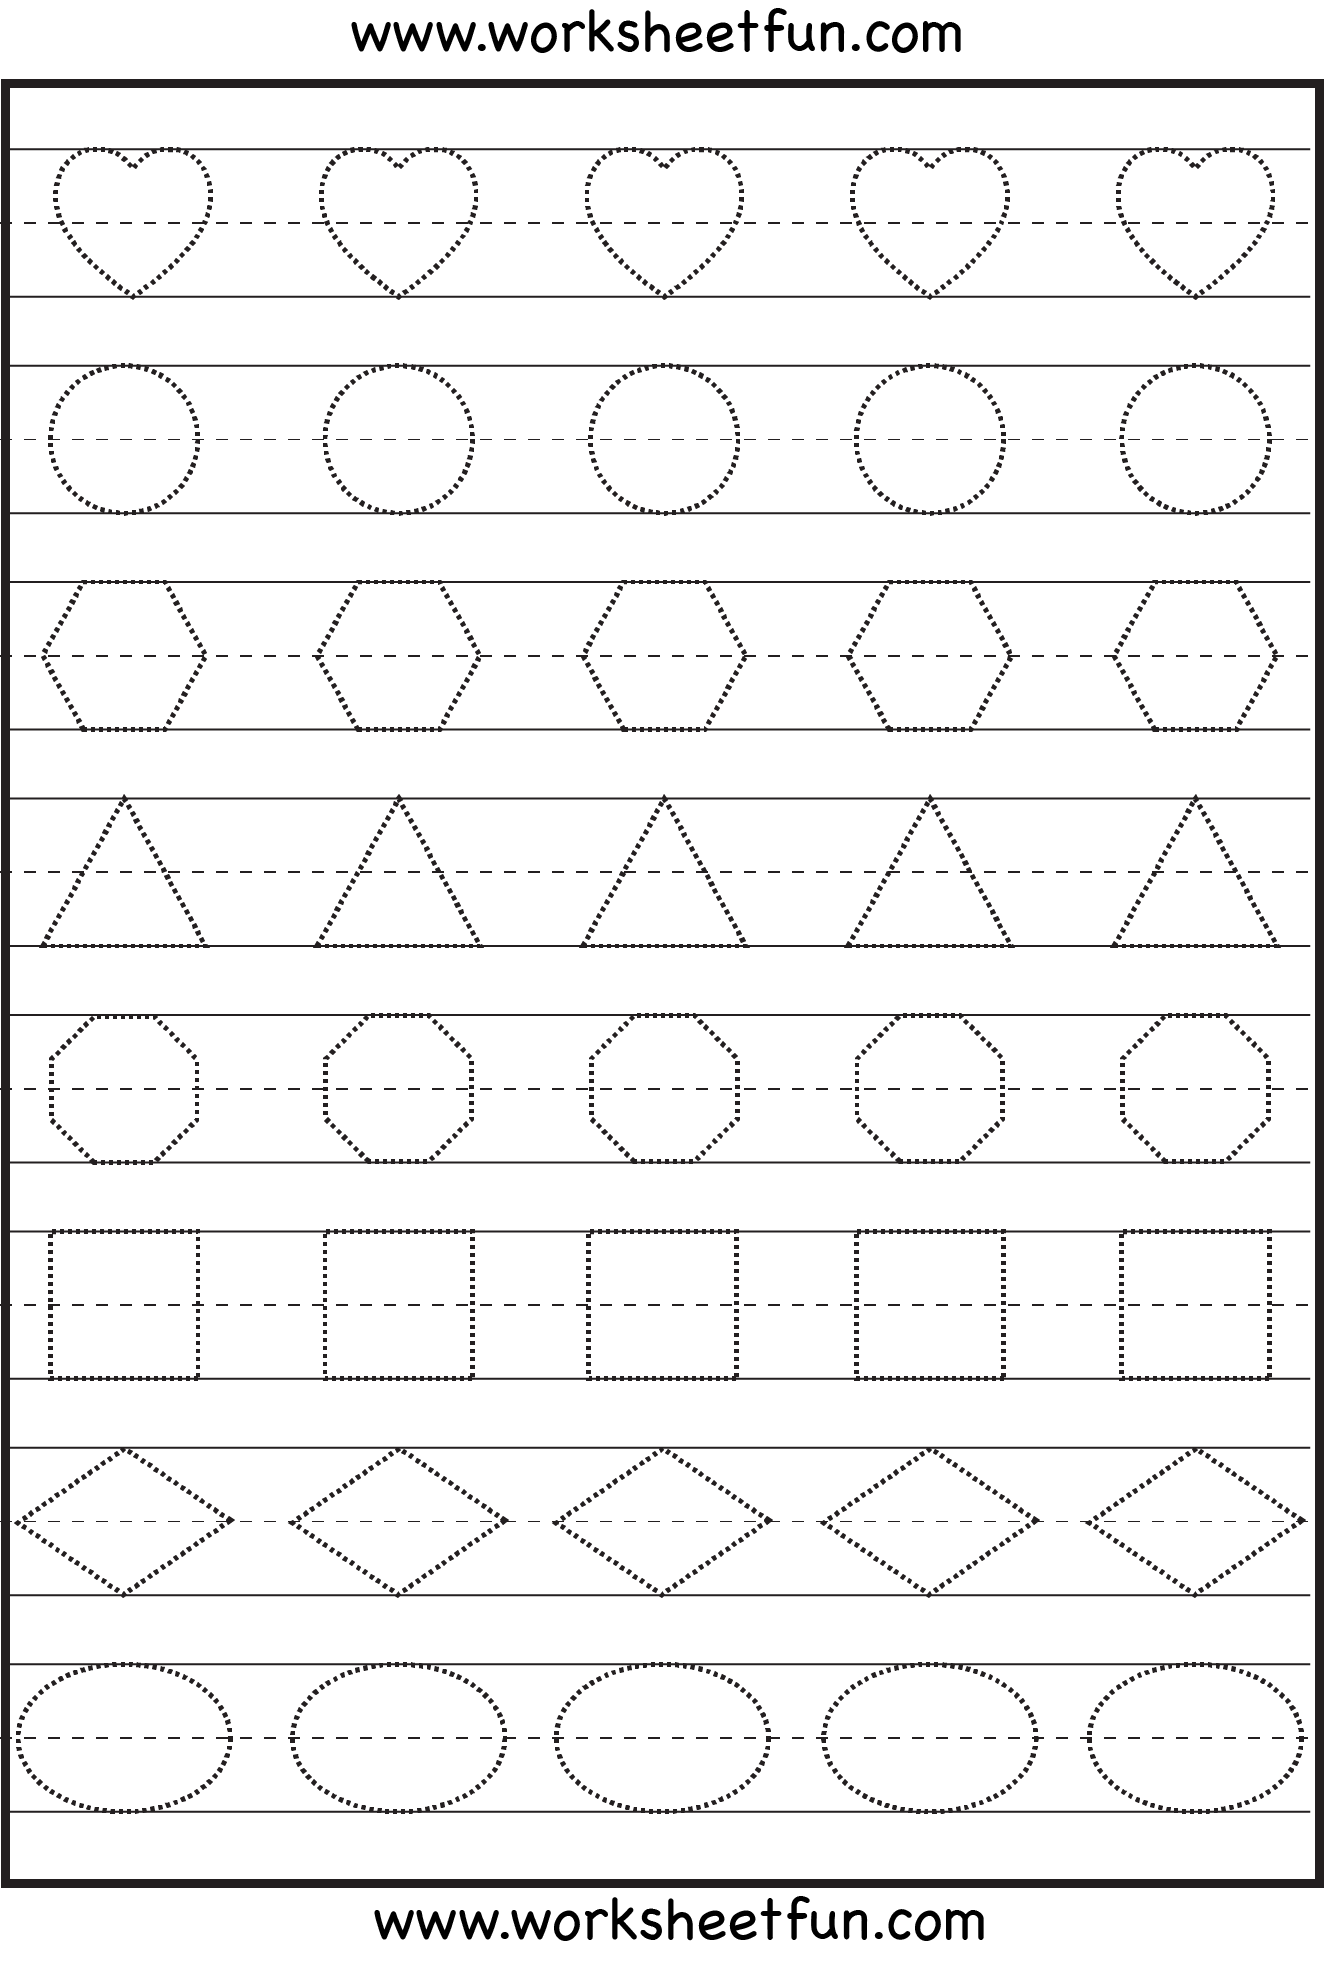 Worksheet Worksheet For Preschoolers 1000 images about school on pinterest printable preschool worksheets and preschool